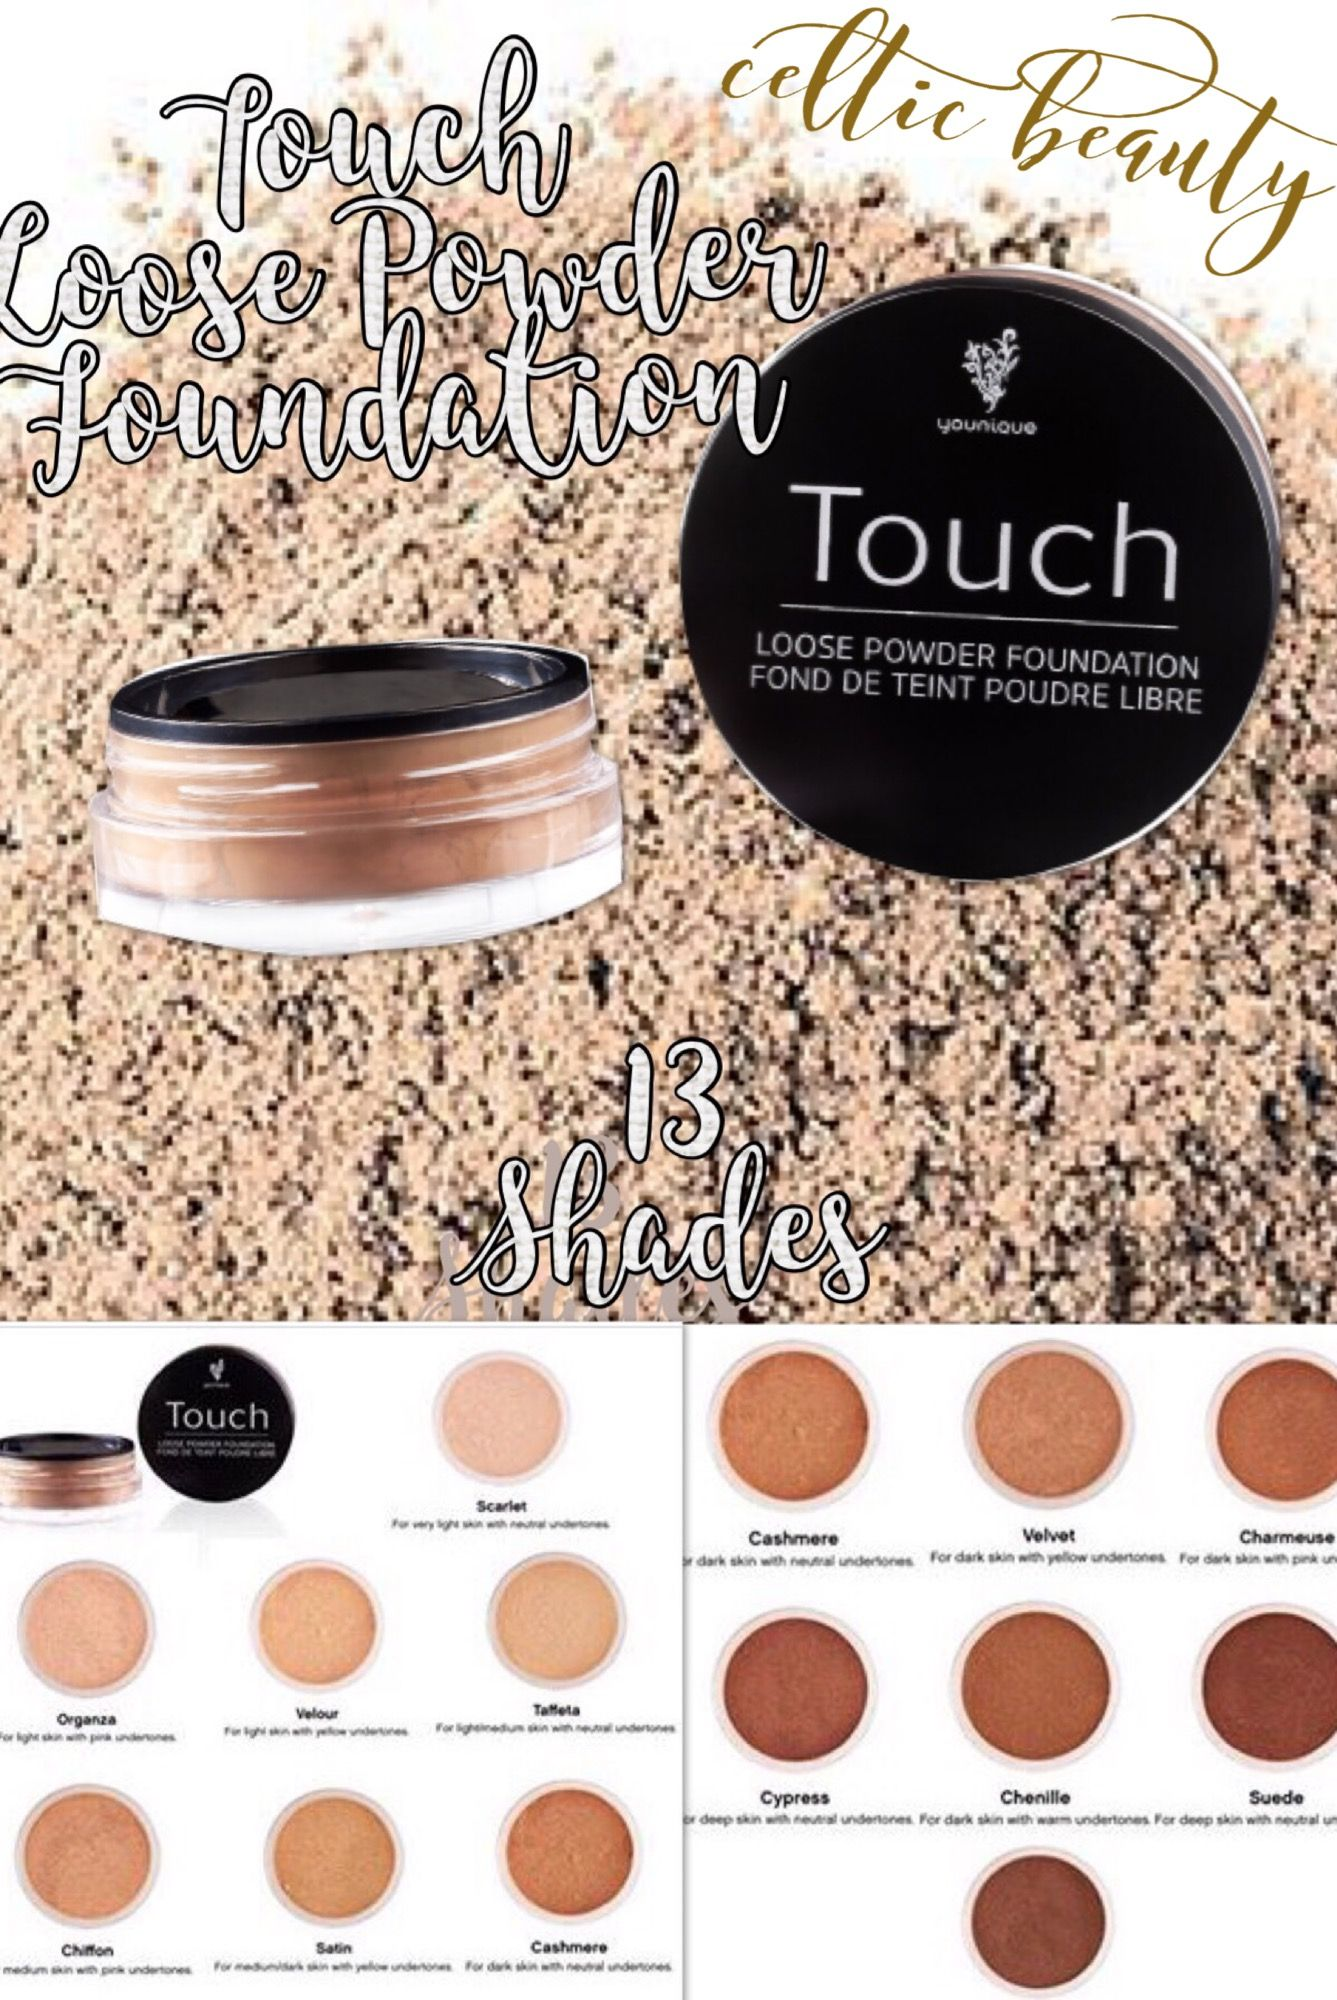 New! Touch Loose Powder Foundation in all 13 Shades...